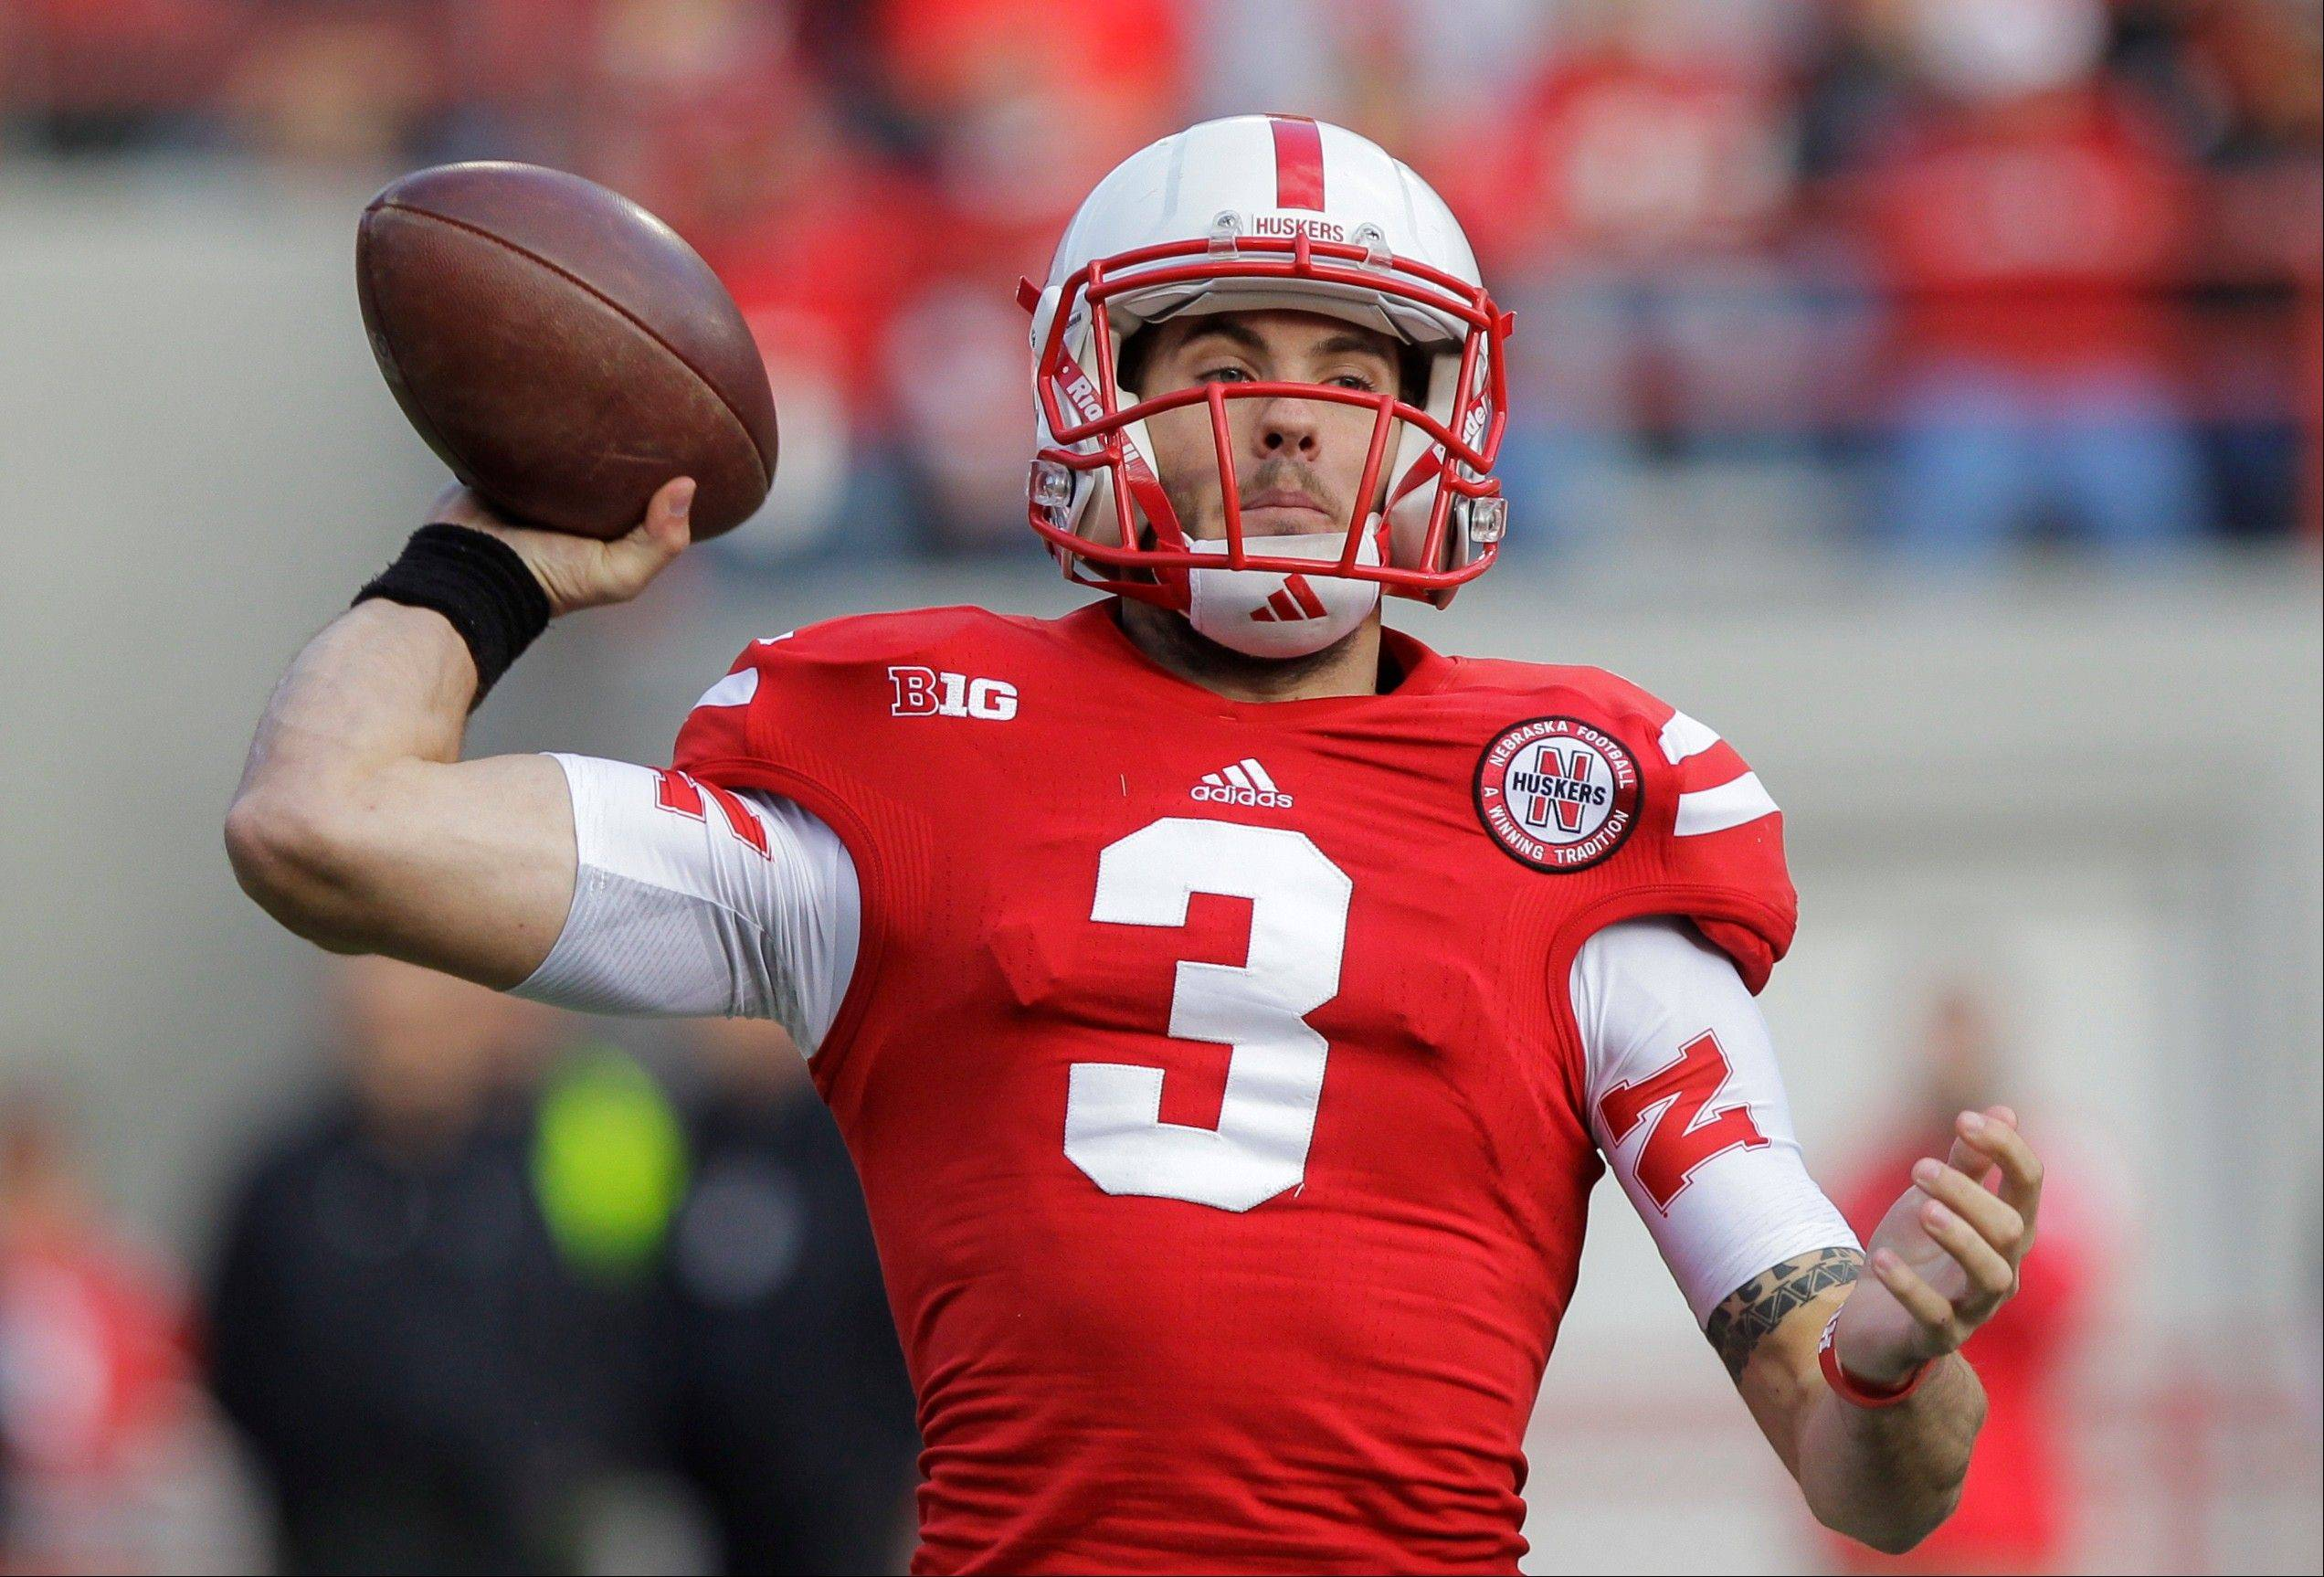 Nebraska QB's father says injury 'can't be toughed out'